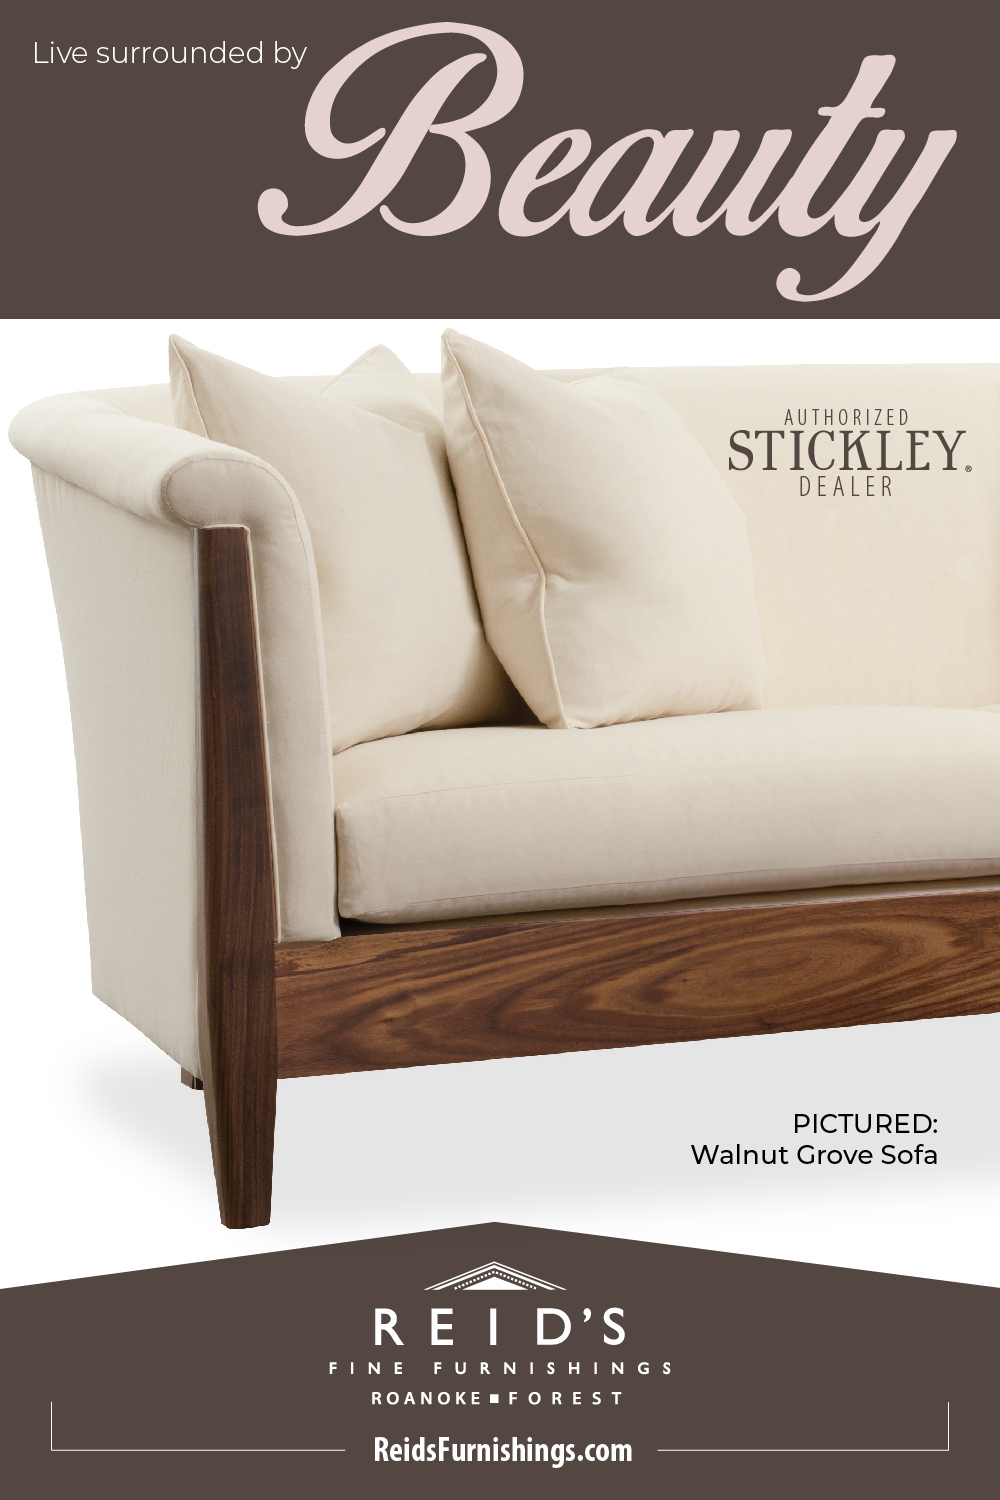 Stickley Beauty